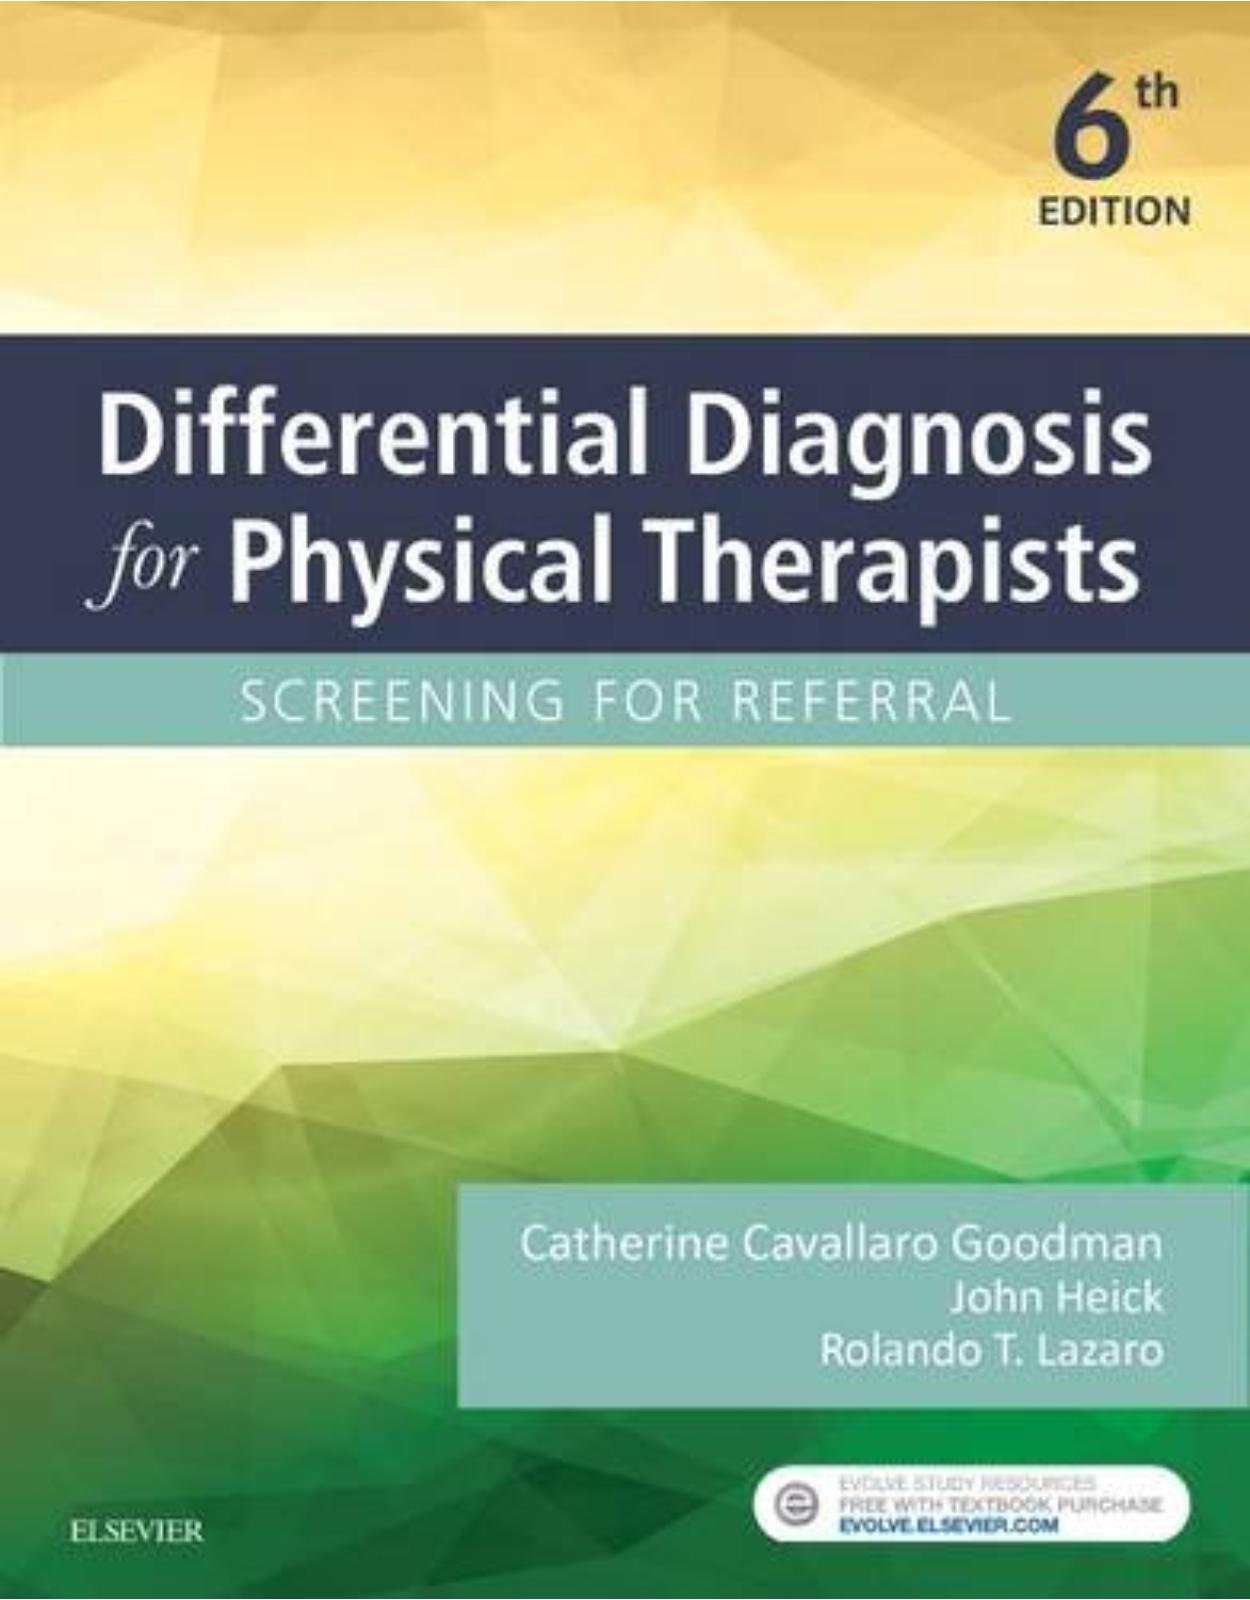 Differential Diagnosis for Physical Therapists: Screening for Referral, 6e